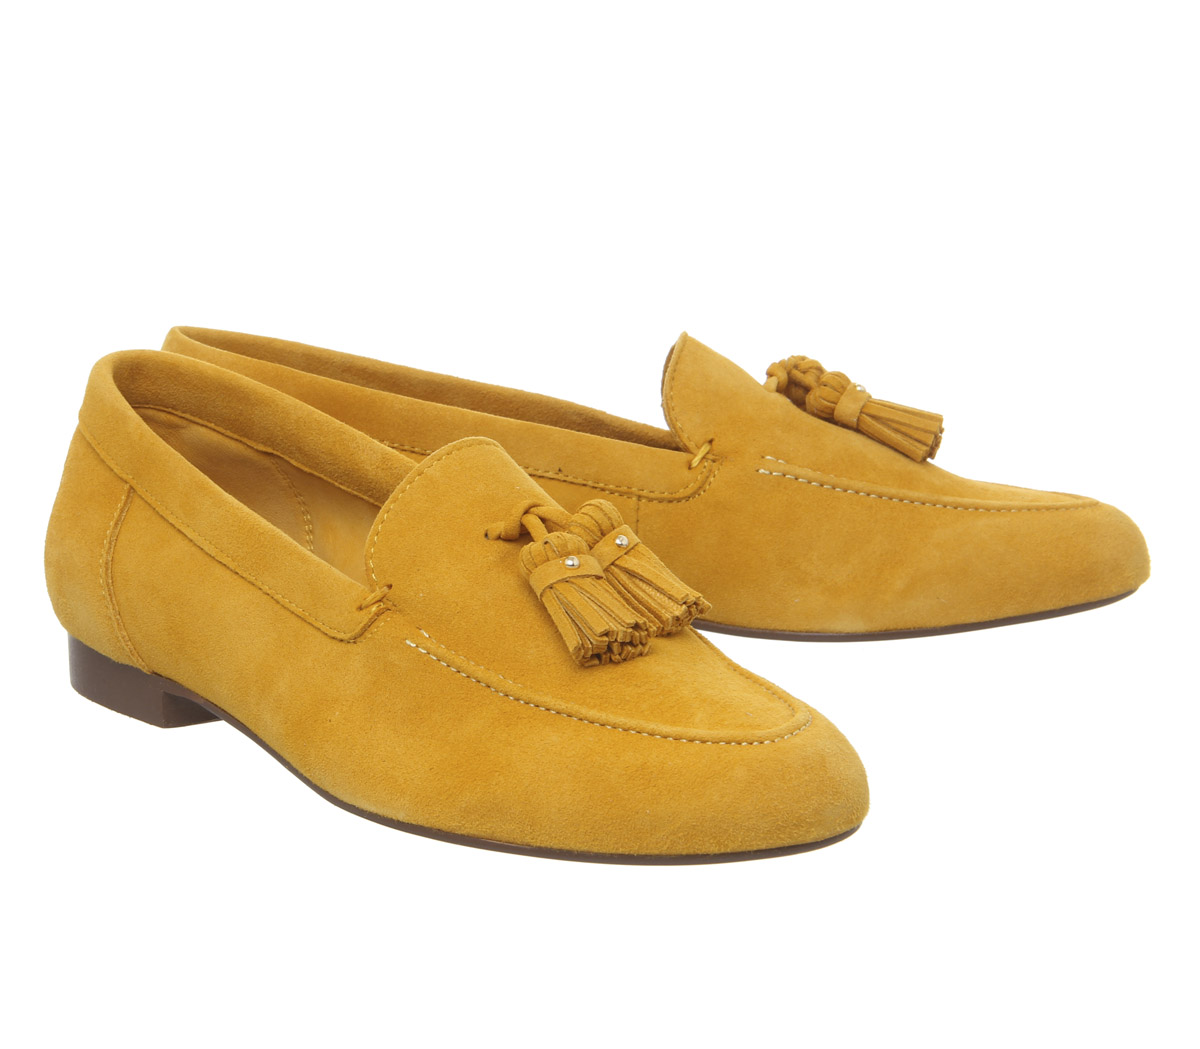 1f5982273b5 Womens Office Retro Tassel Loafers Yellow Suede 2 Flats